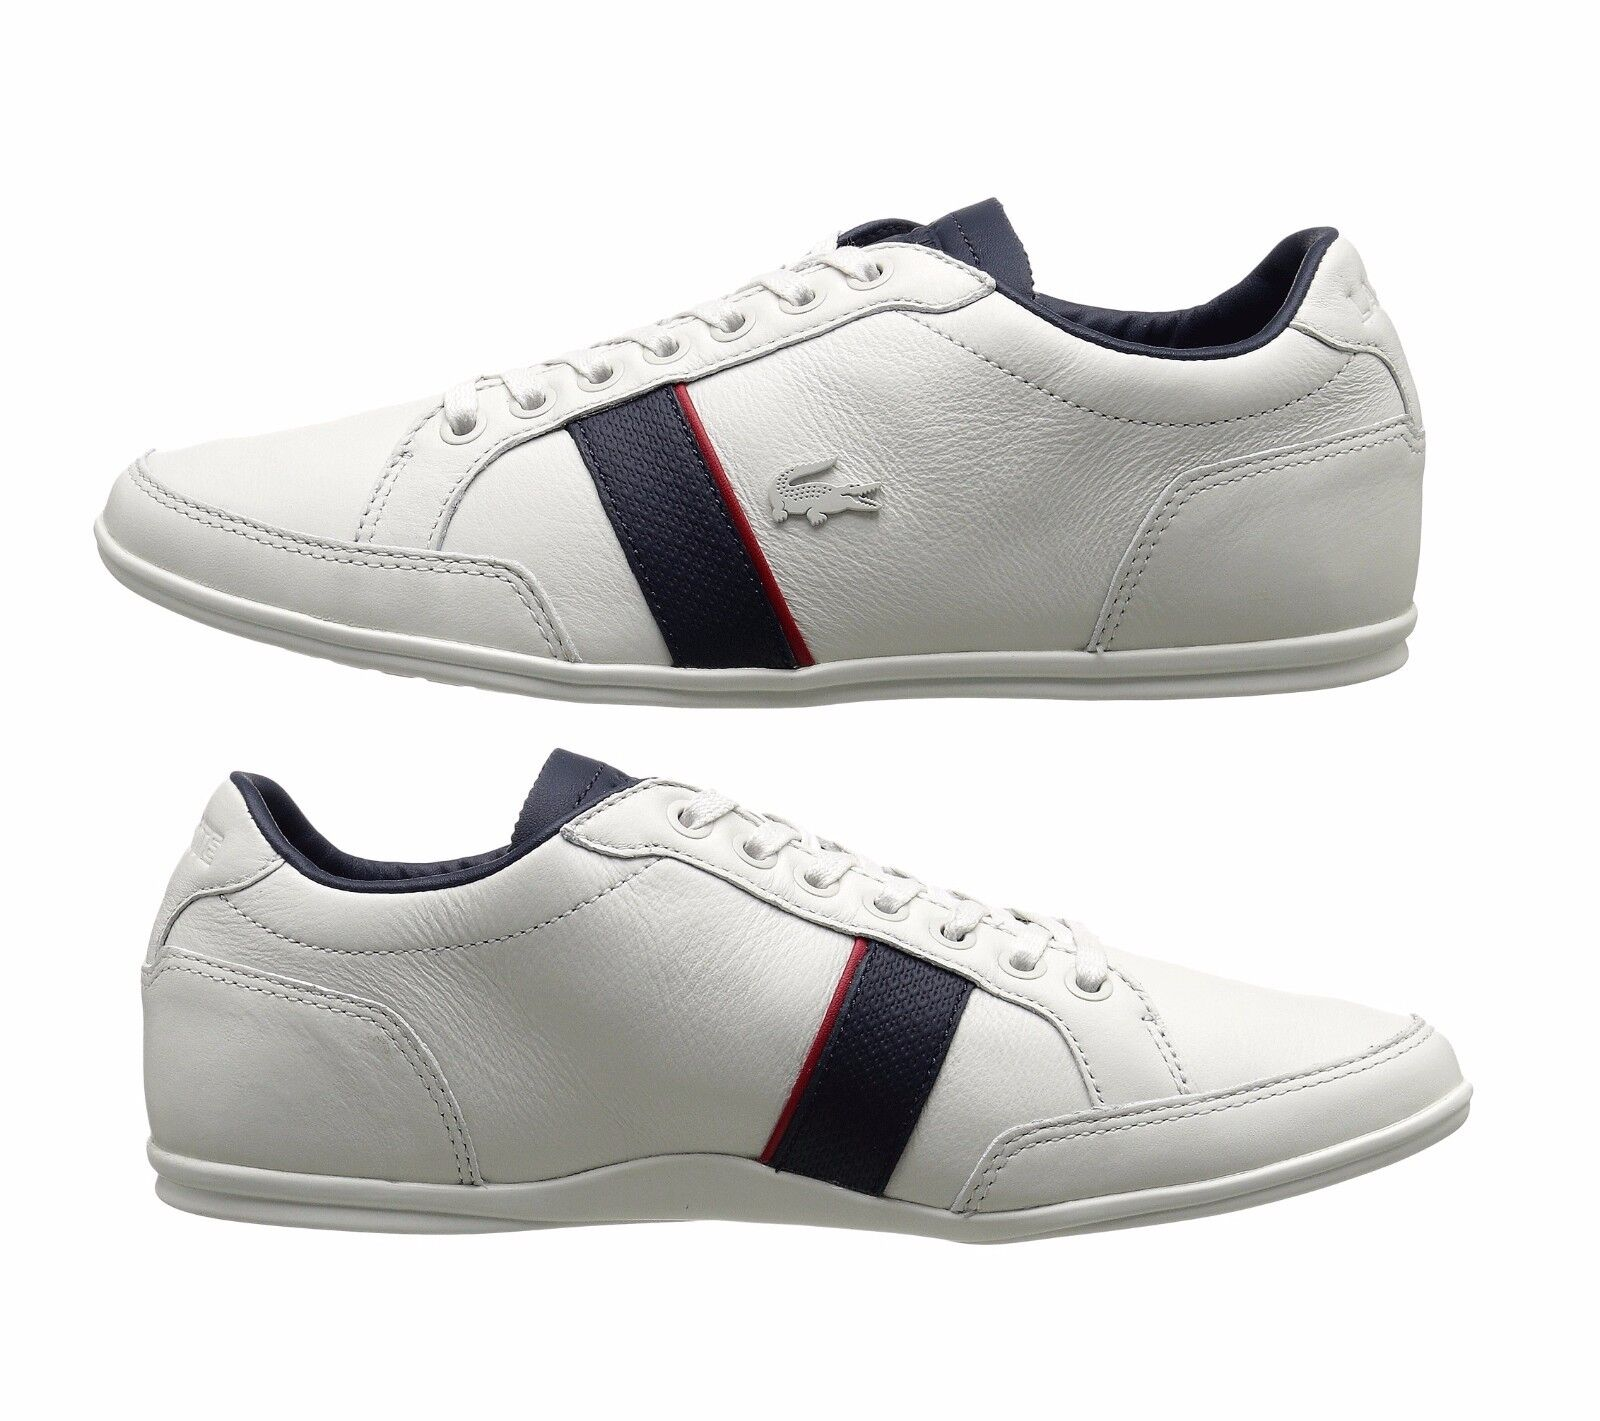 New Lacoste Men Alisos 116 White Leather Lace up casual Fashion shoes Sneakers